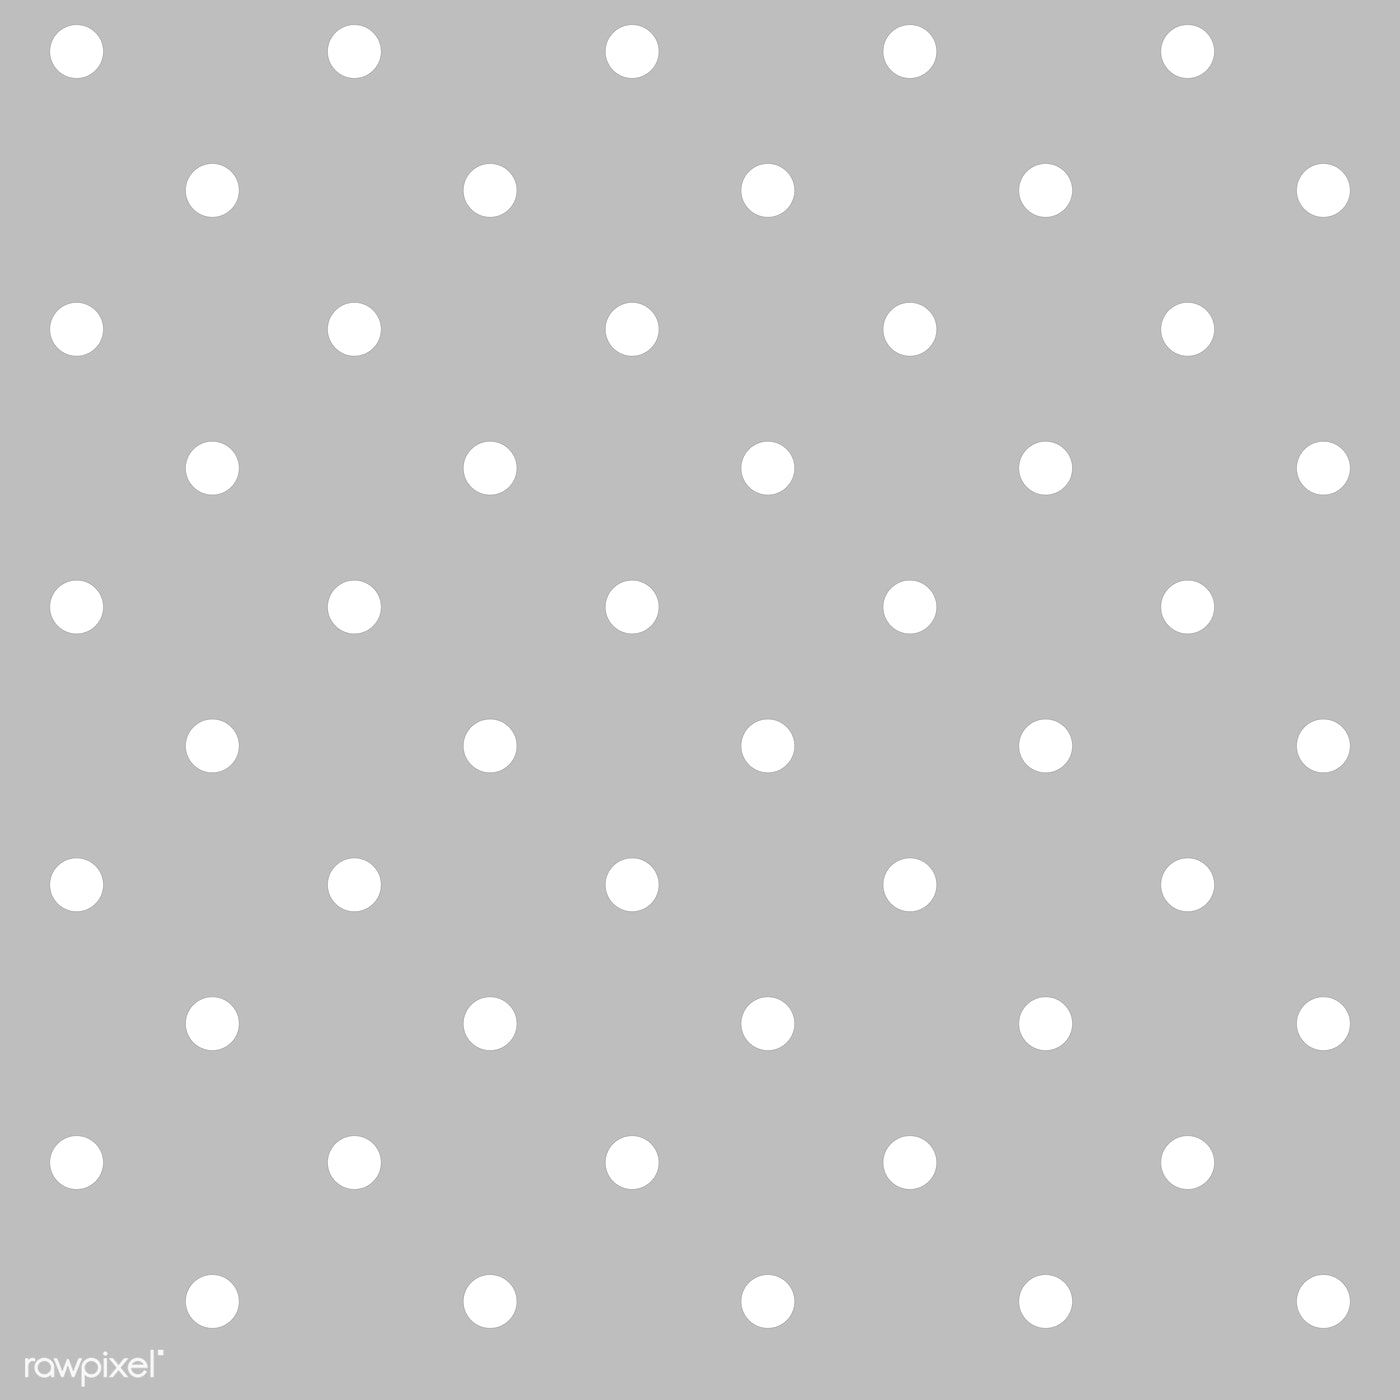 Gray And White Seamless Polka Dot Pattern Vector Free Image By Rawpixel Com Filmful Dot Pattern Vector Dots Polka Dot Pattern